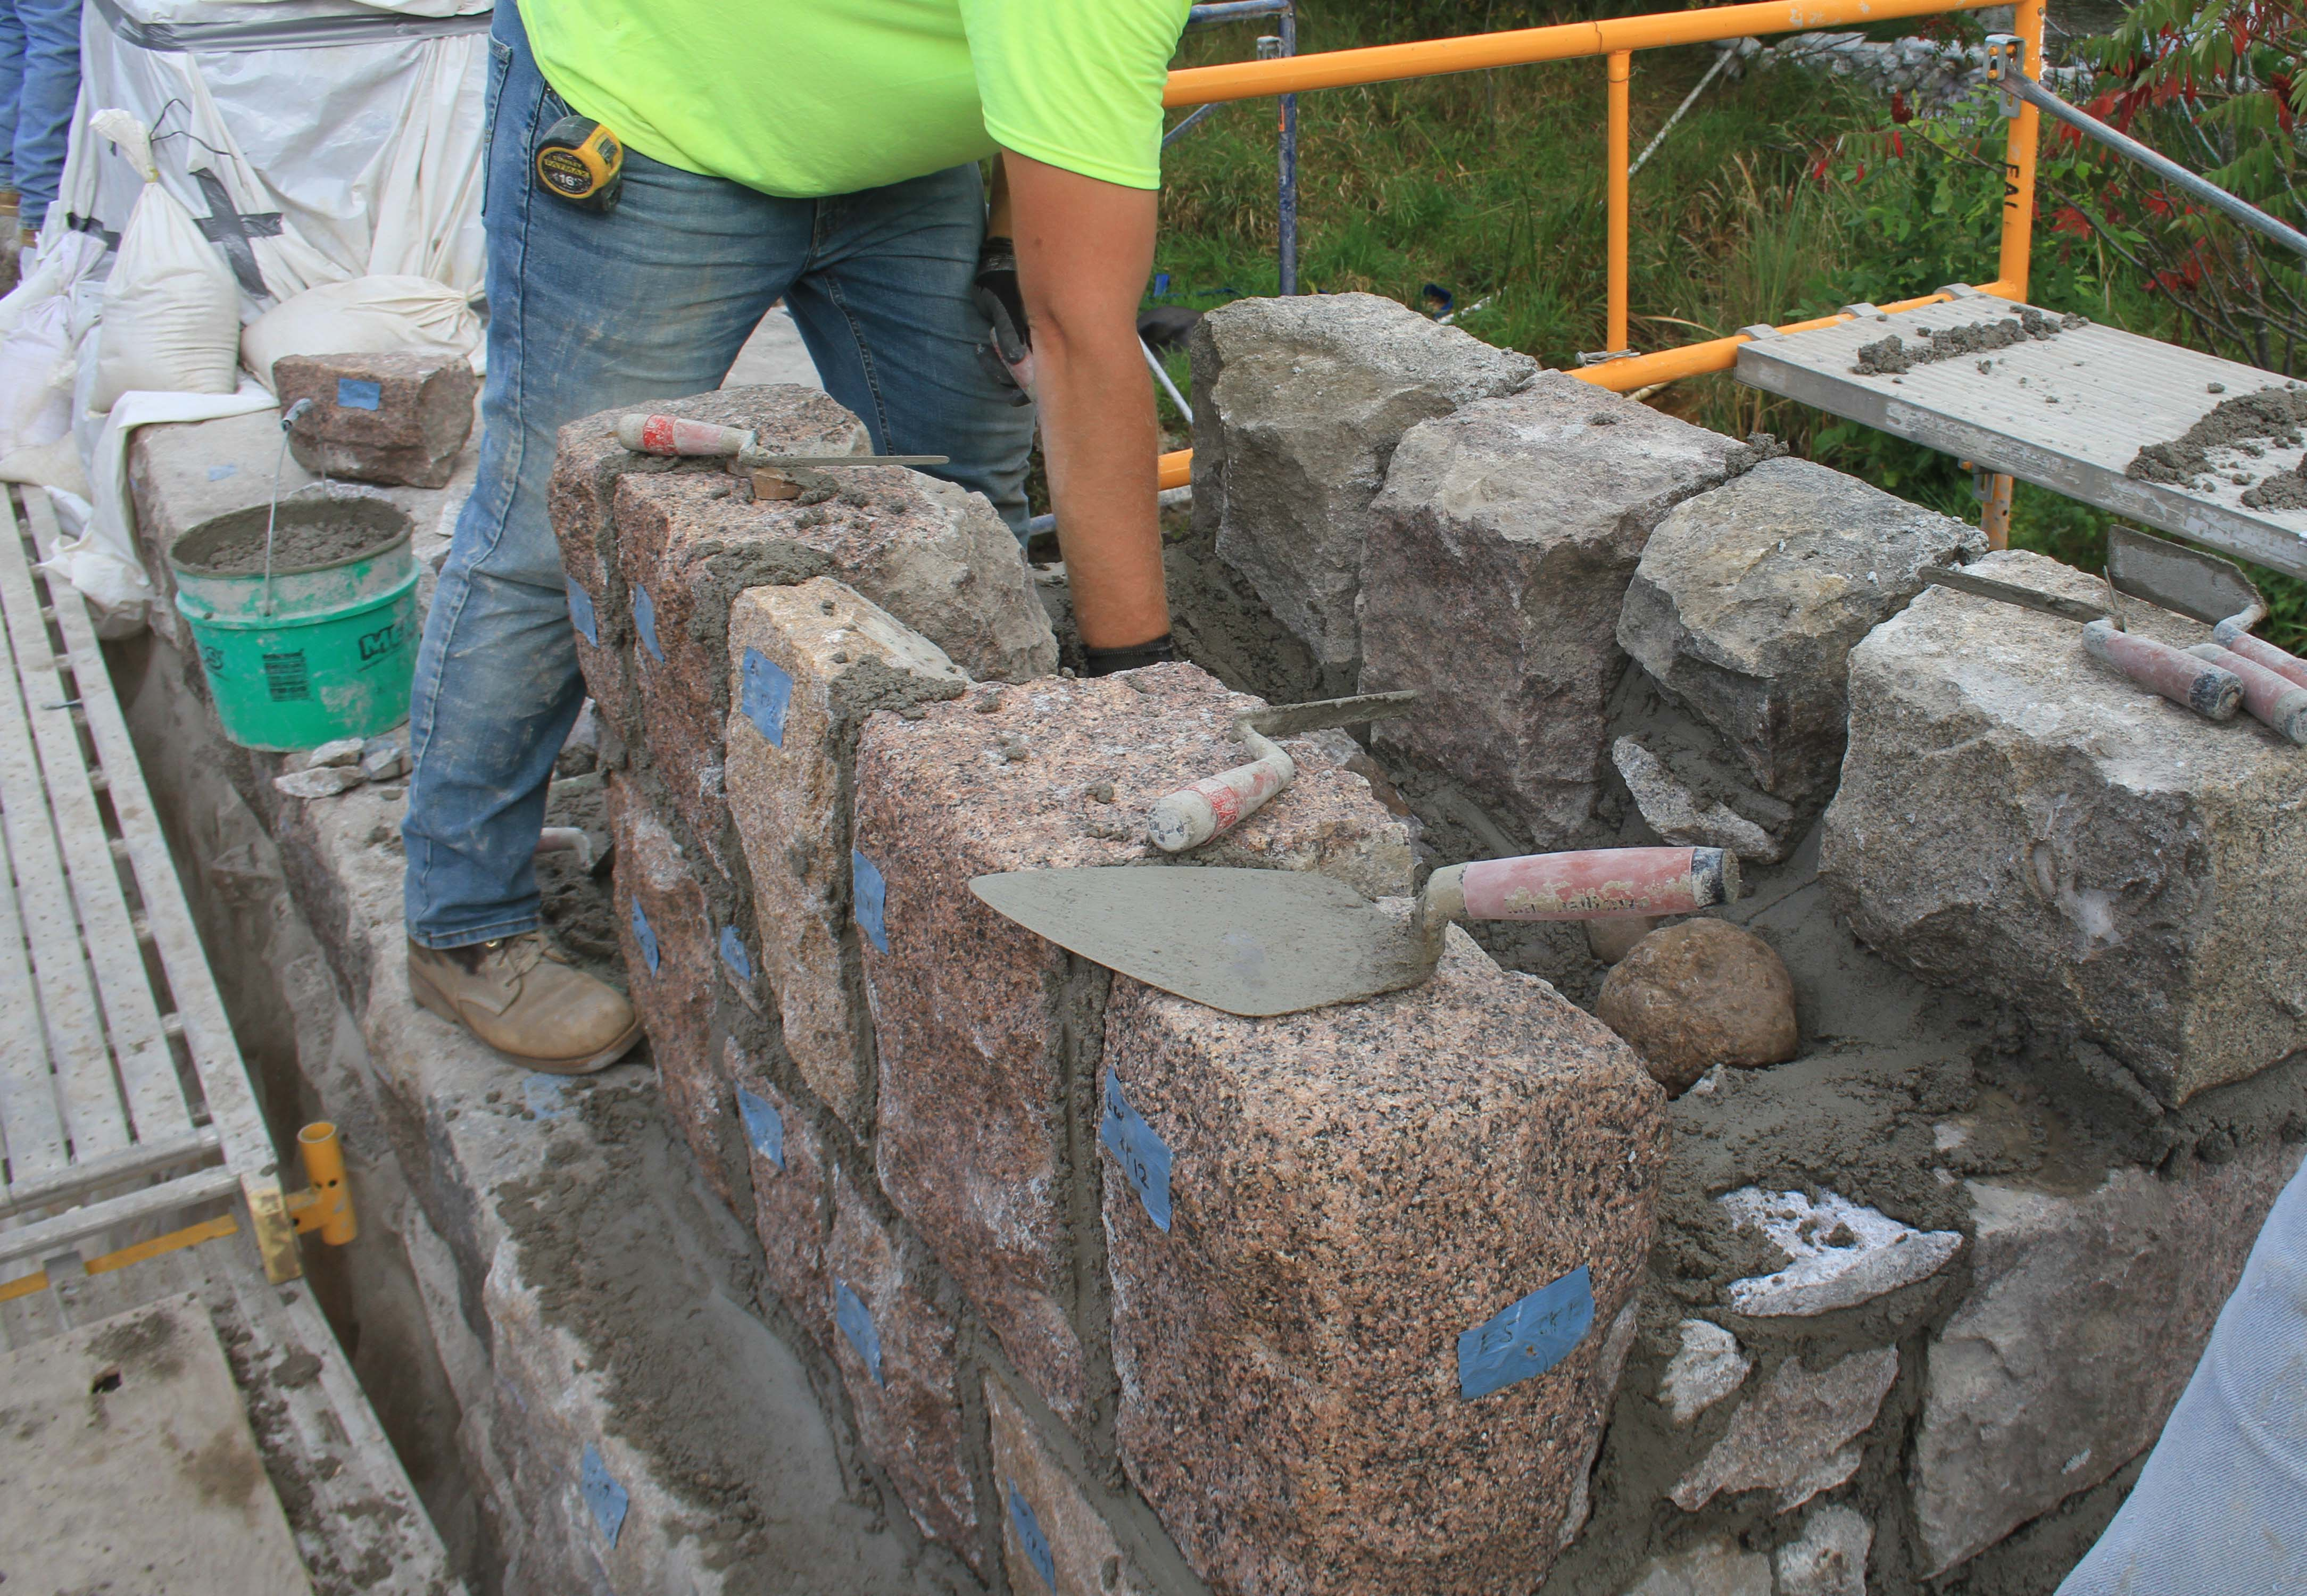 The stones are being carefully re-laid with new mortar in the same position they were in originally to reconstruct the bridge rail. September 2018.